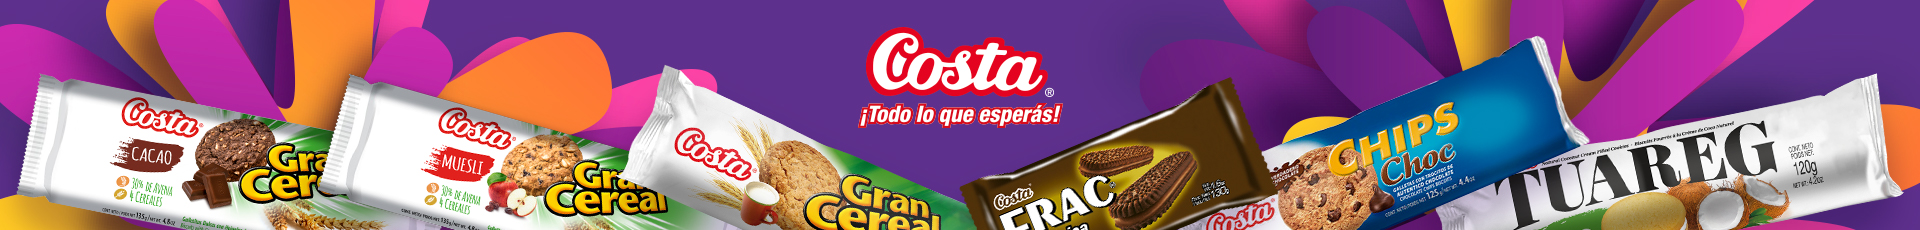 /Costa?utm_source=web&utm_medium=banner%20catalogo%20superior&utm_campaign=costa